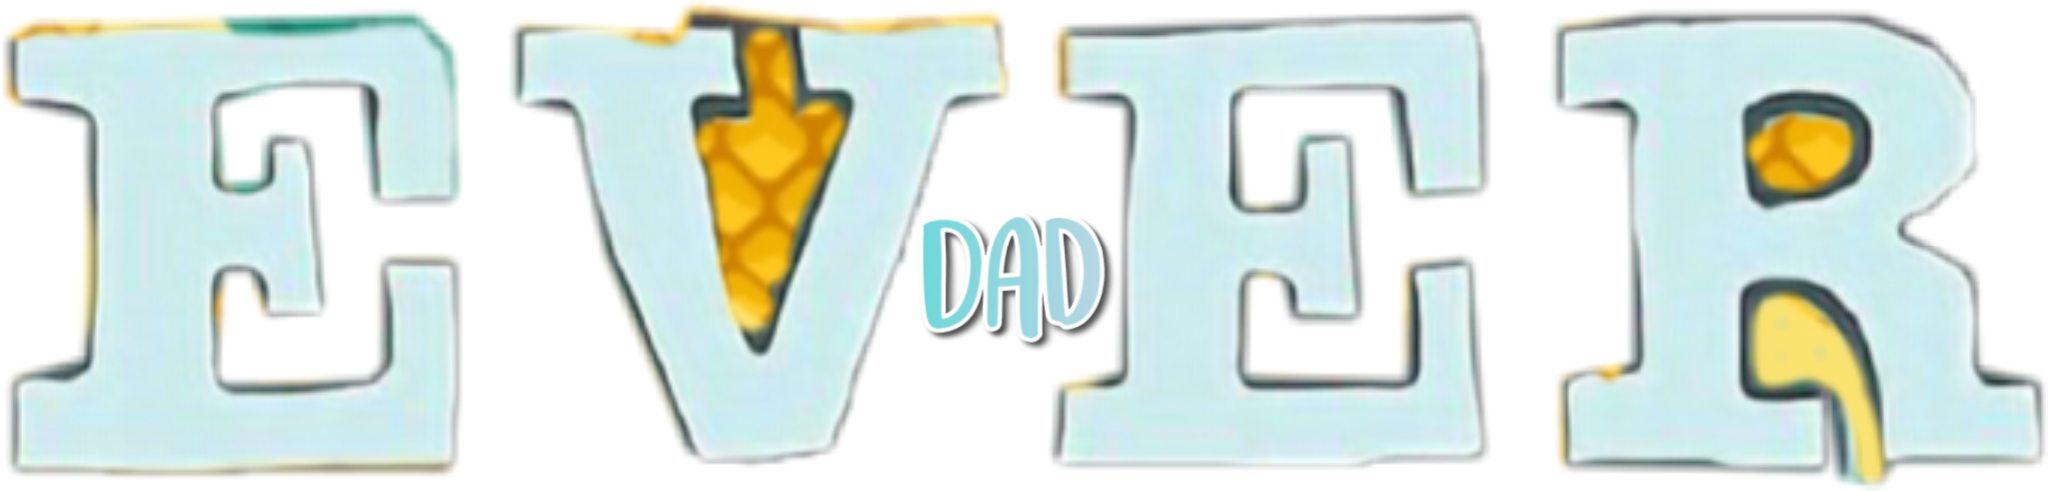 #Dad sticker